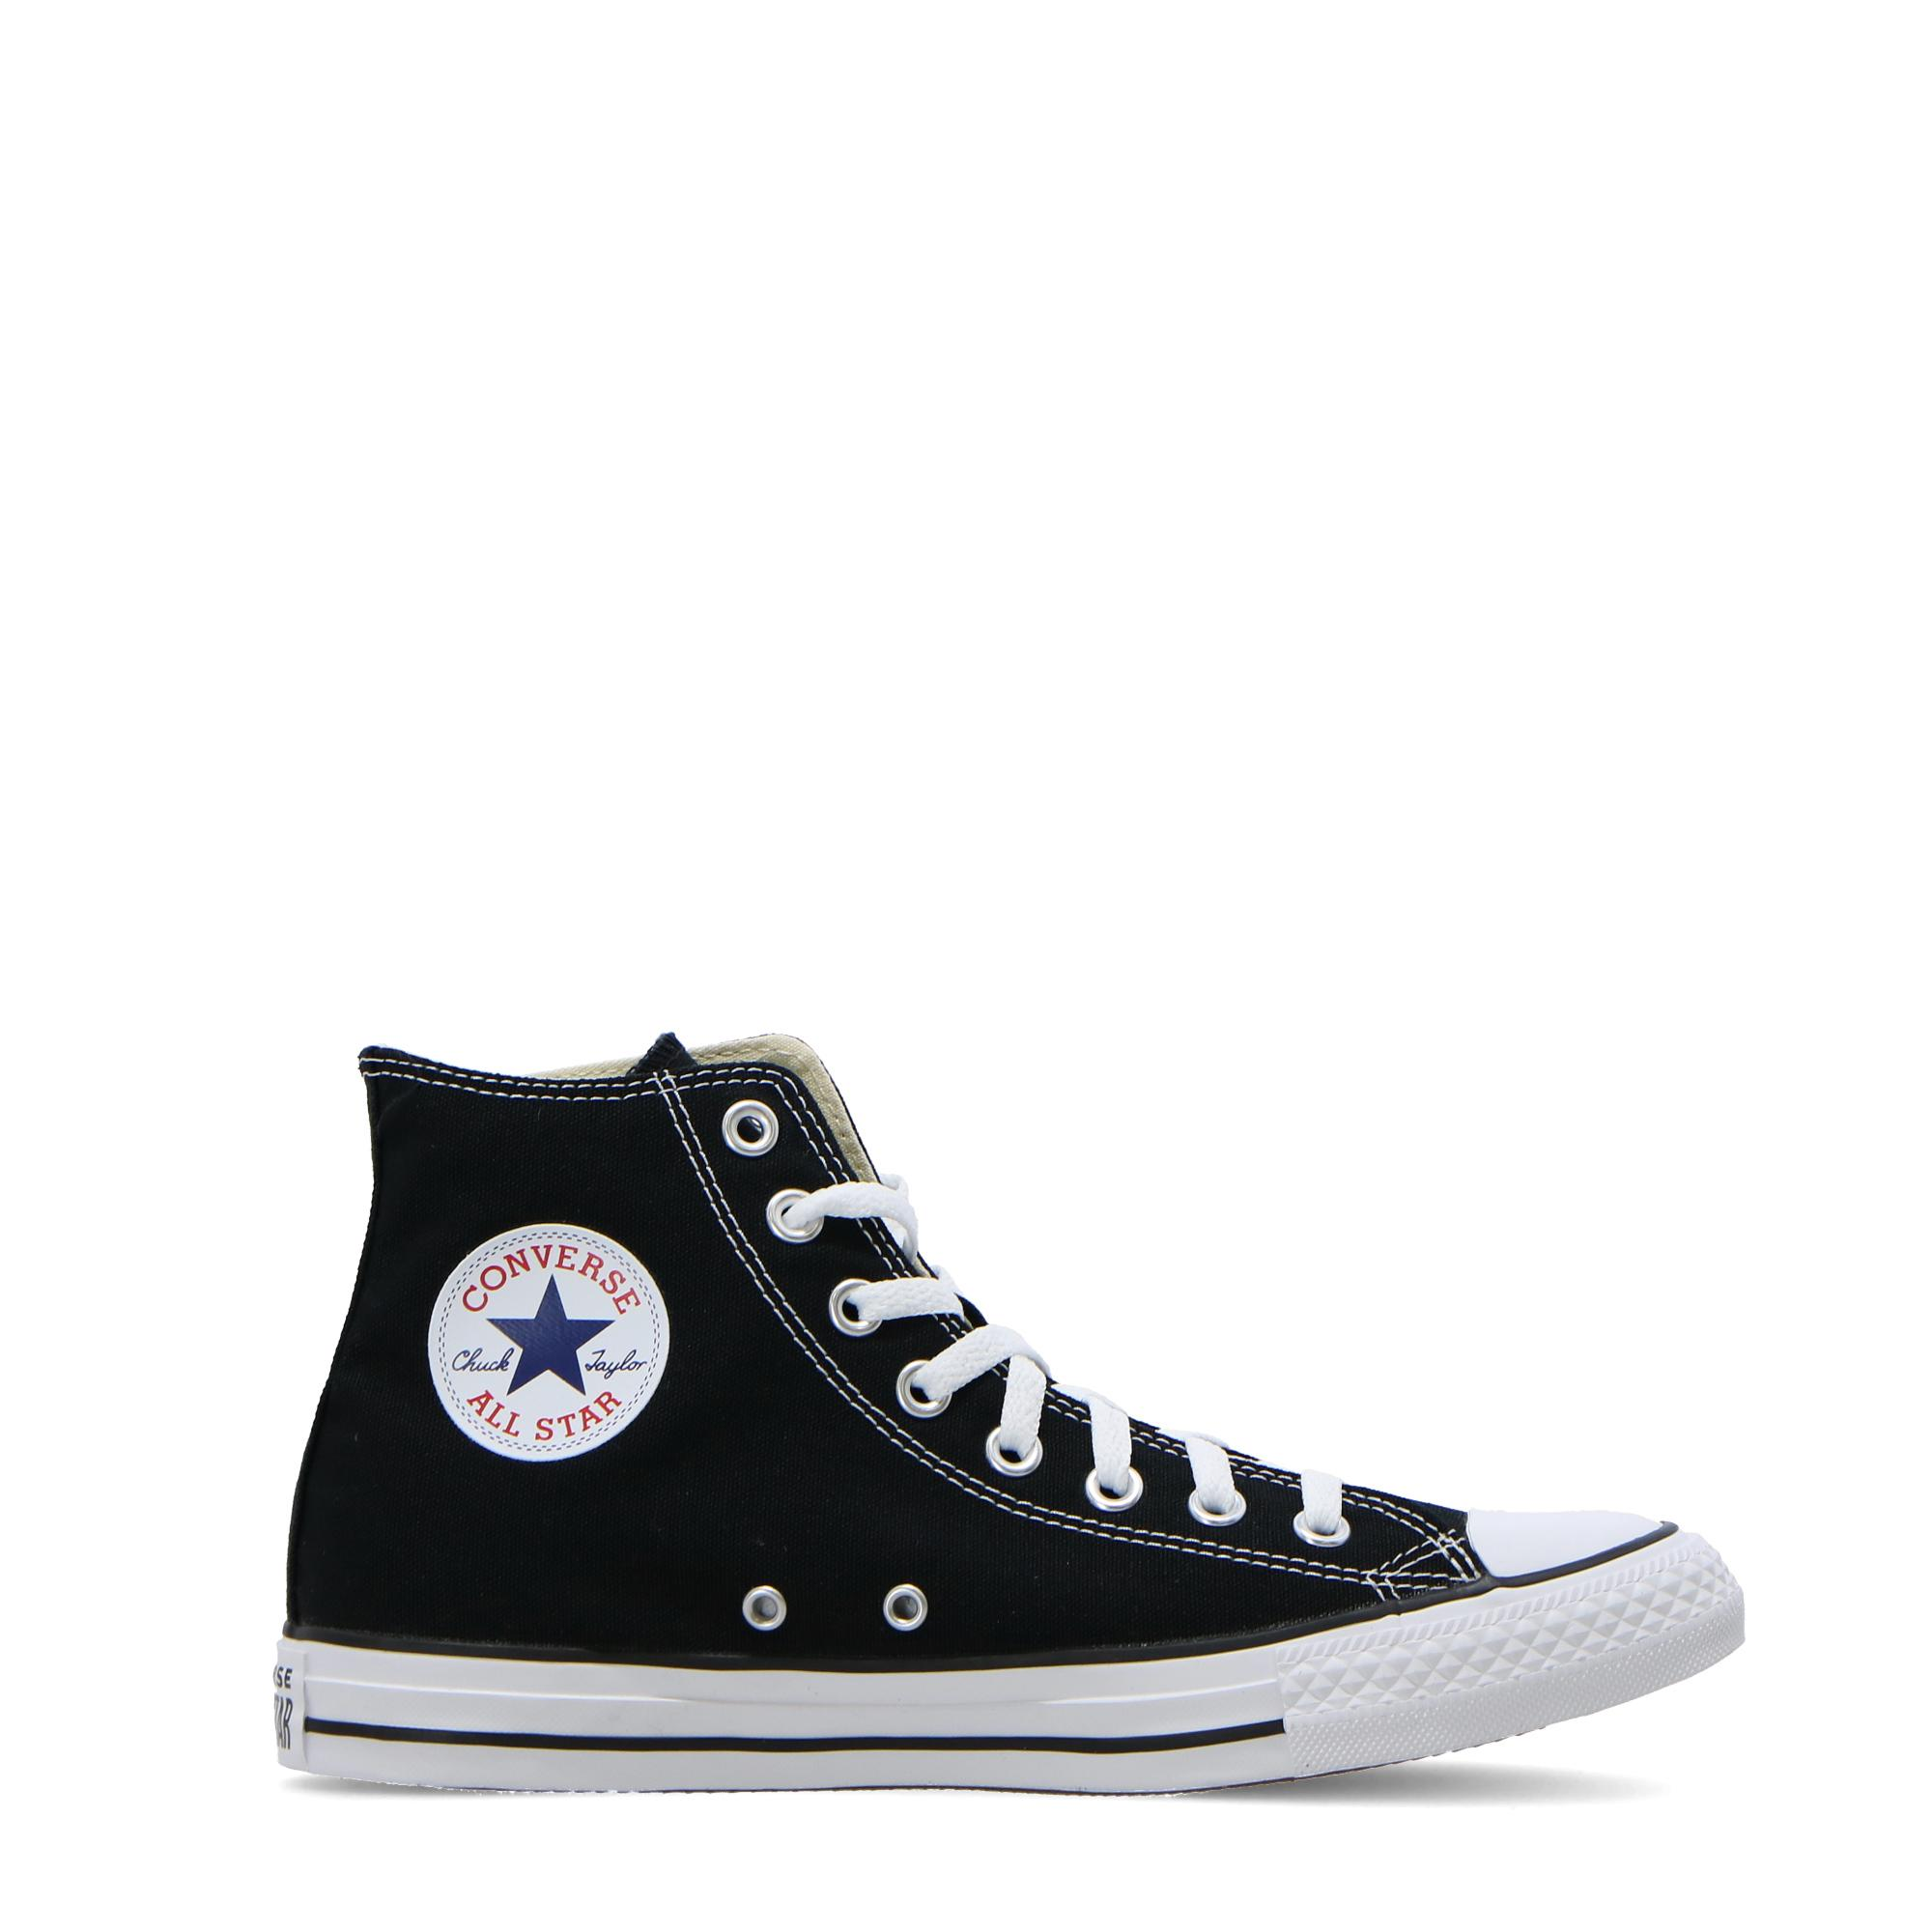 Converse Chuck Taylor All Star  Seasonal Hi Black